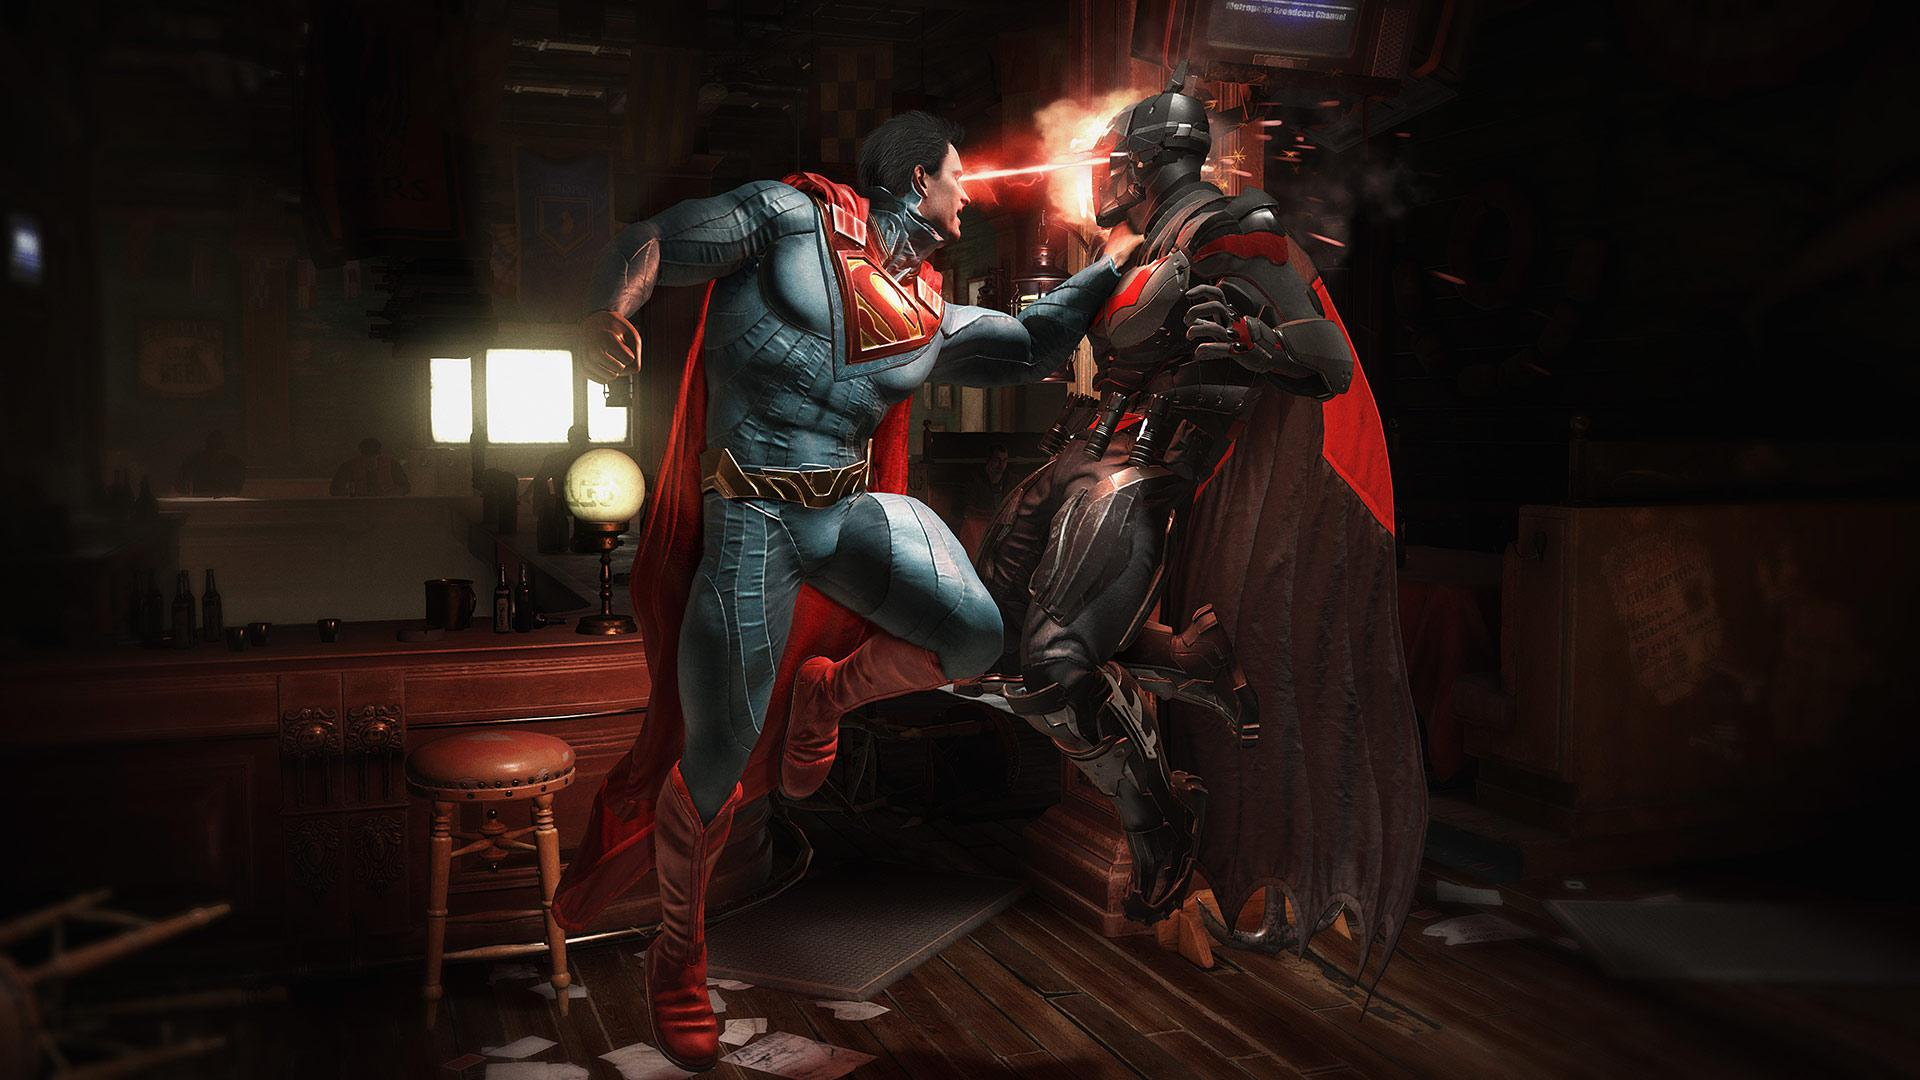 Ever wanted to fight as Superman and Batman? Well, now you can